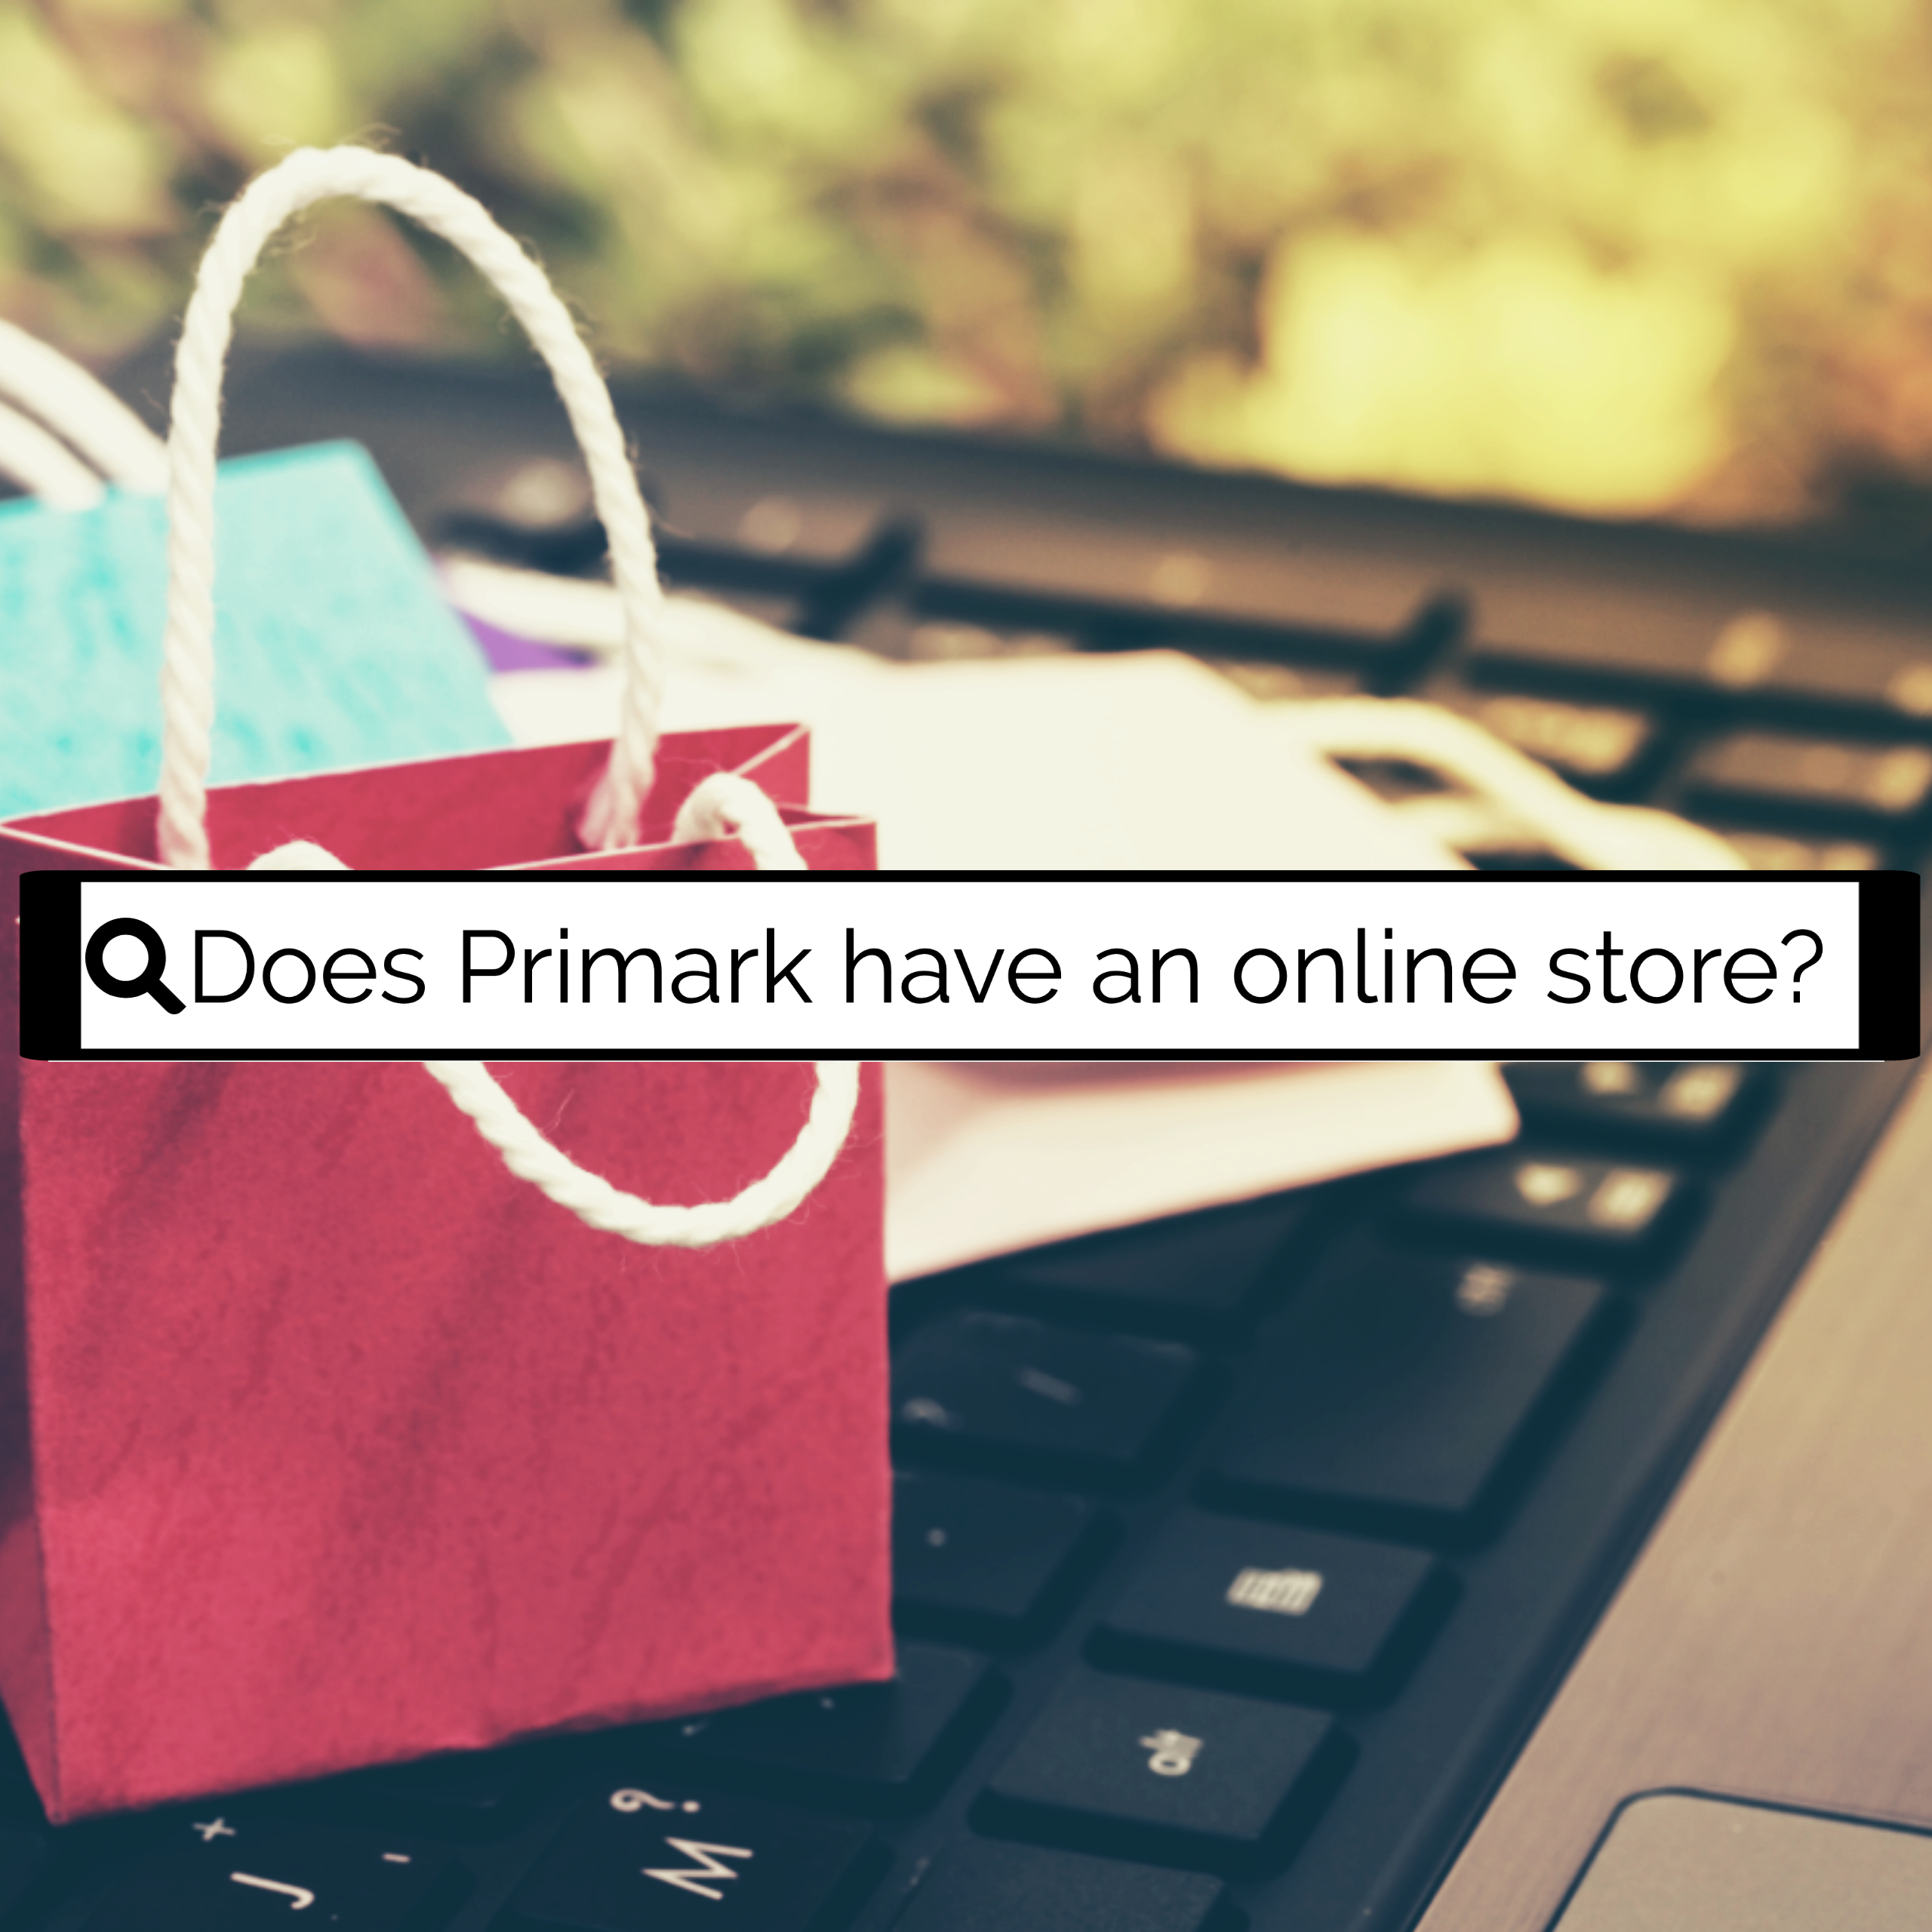 """Shopping bags ontop of keyboard with search bar """"Does Primark have an online store?"""""""